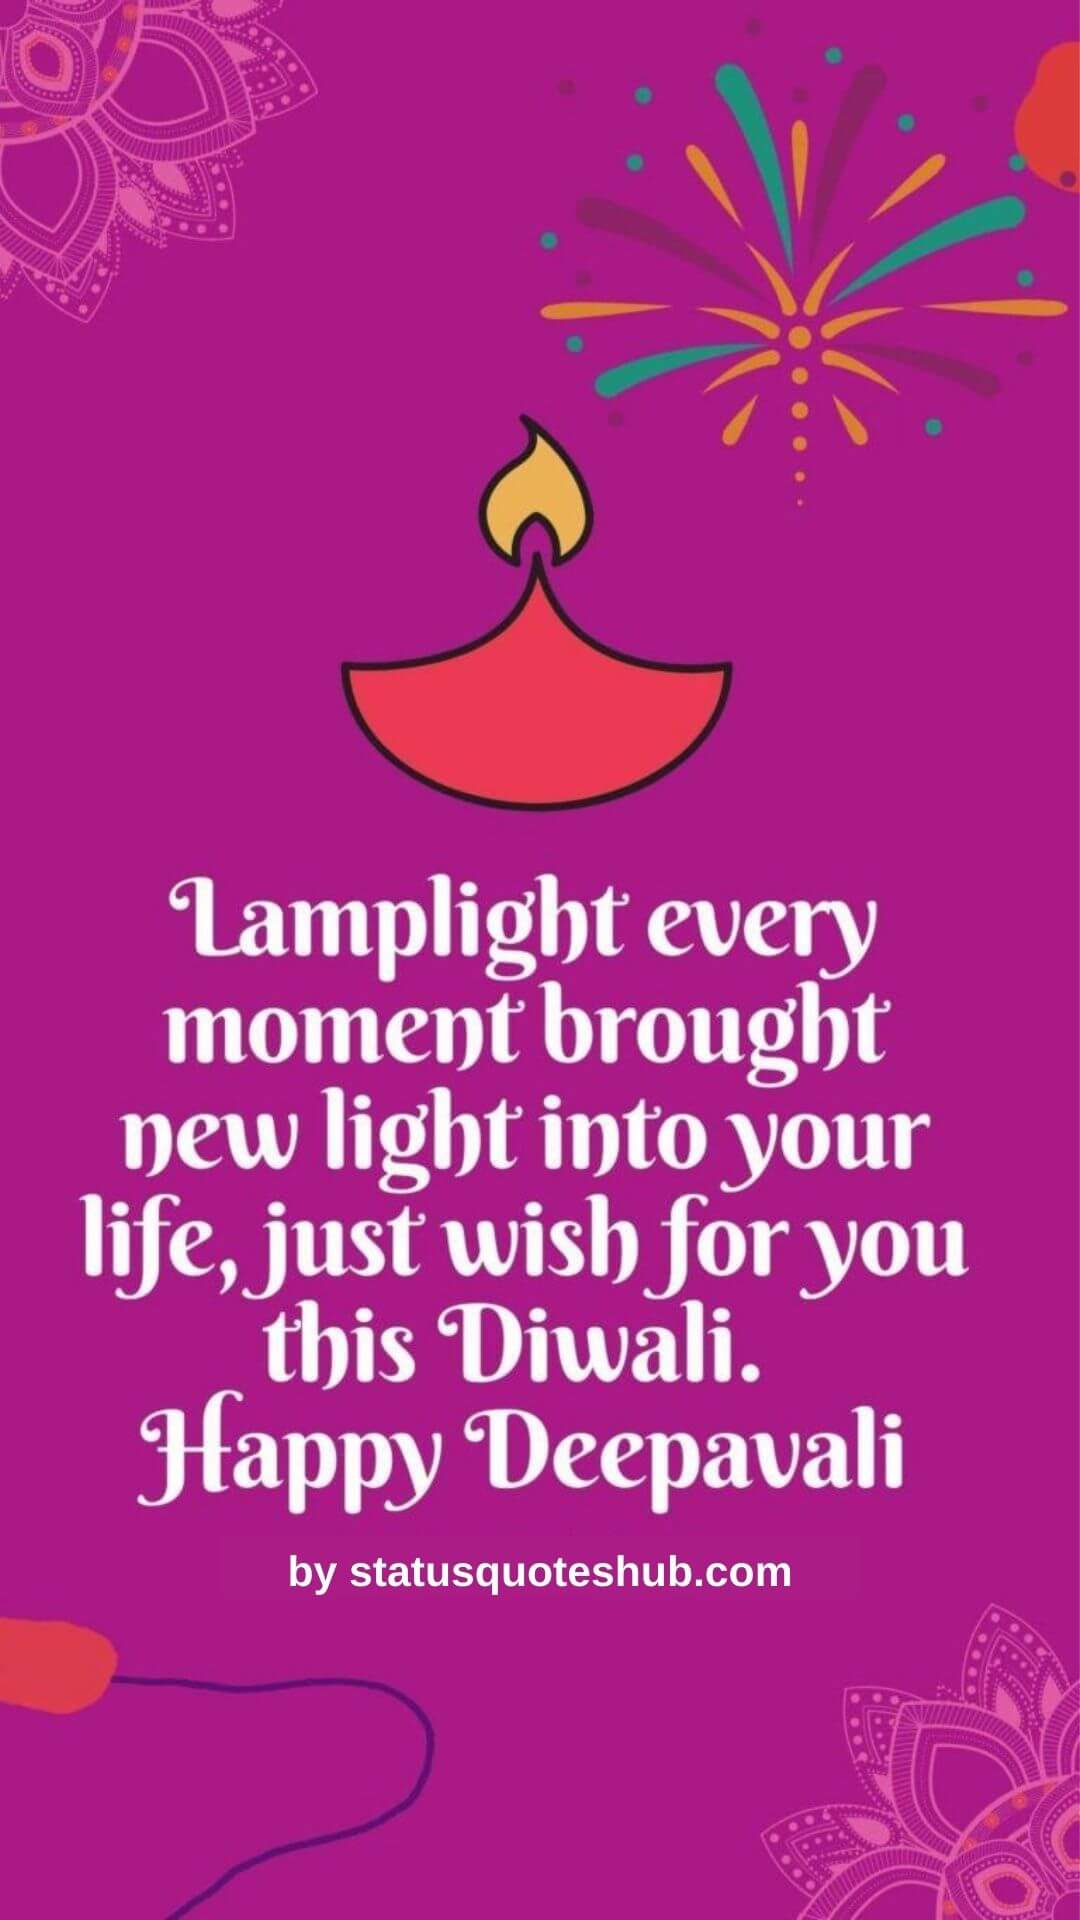 Happy diwali wishes and status